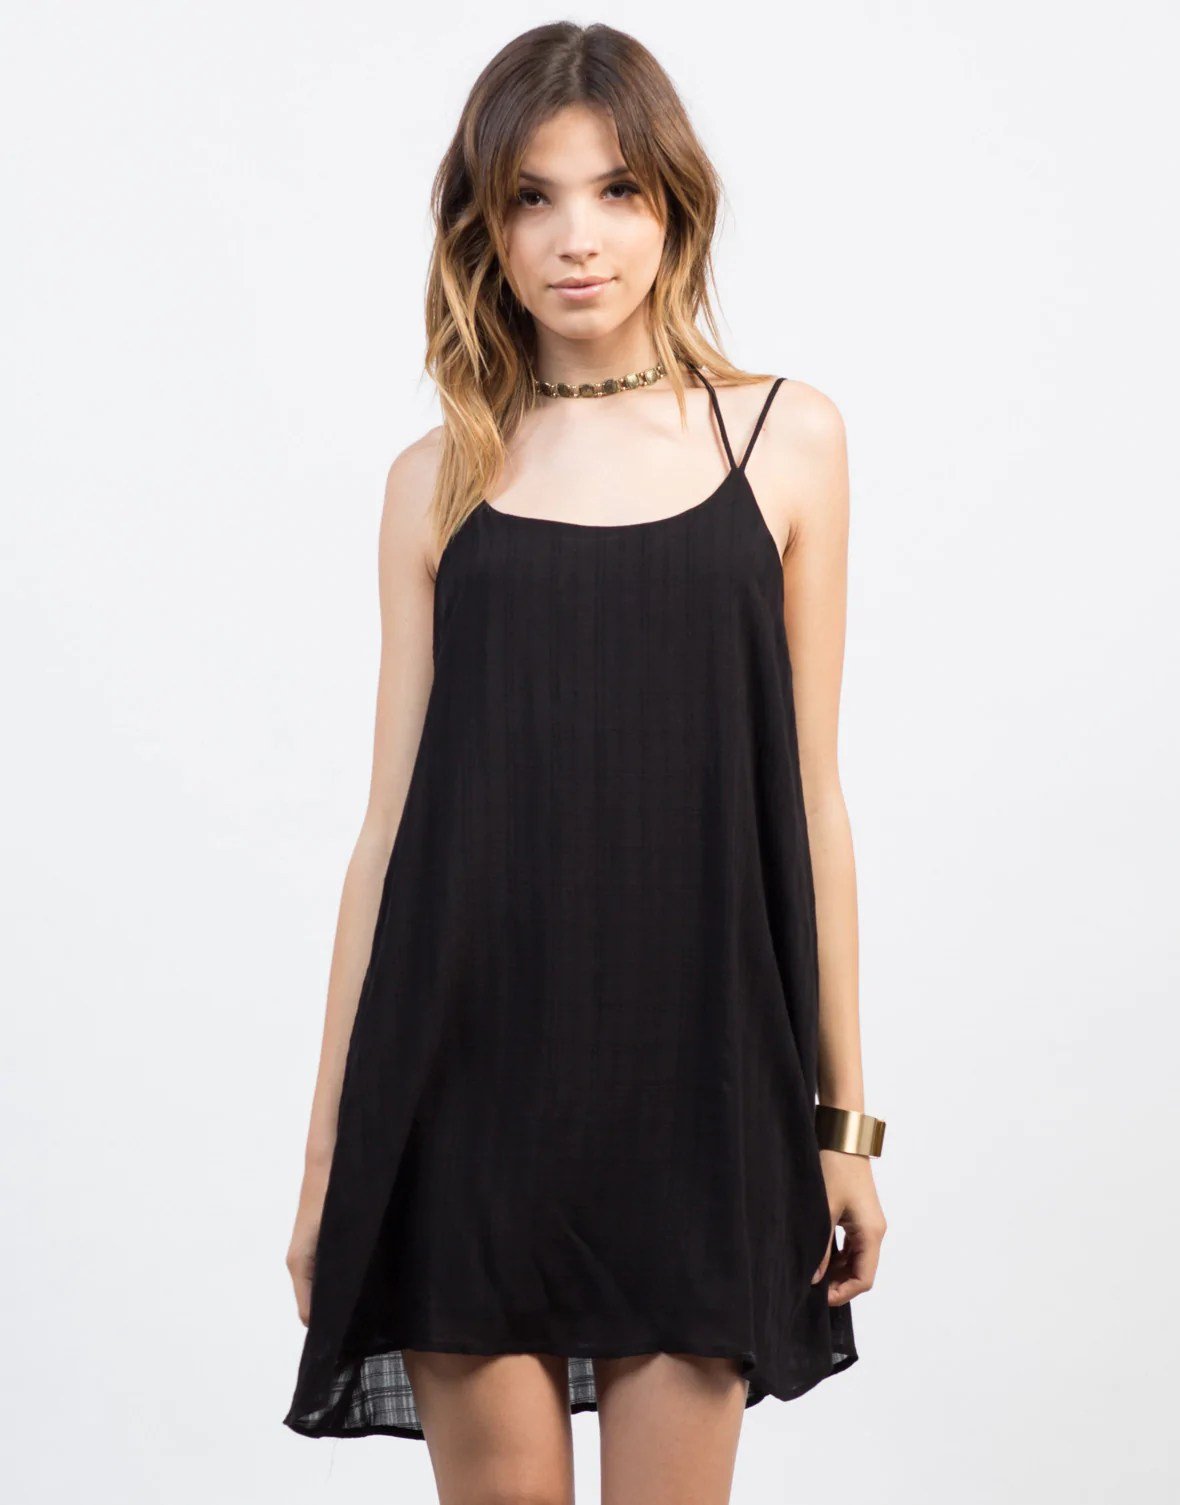 Little Black Dress Halter Top